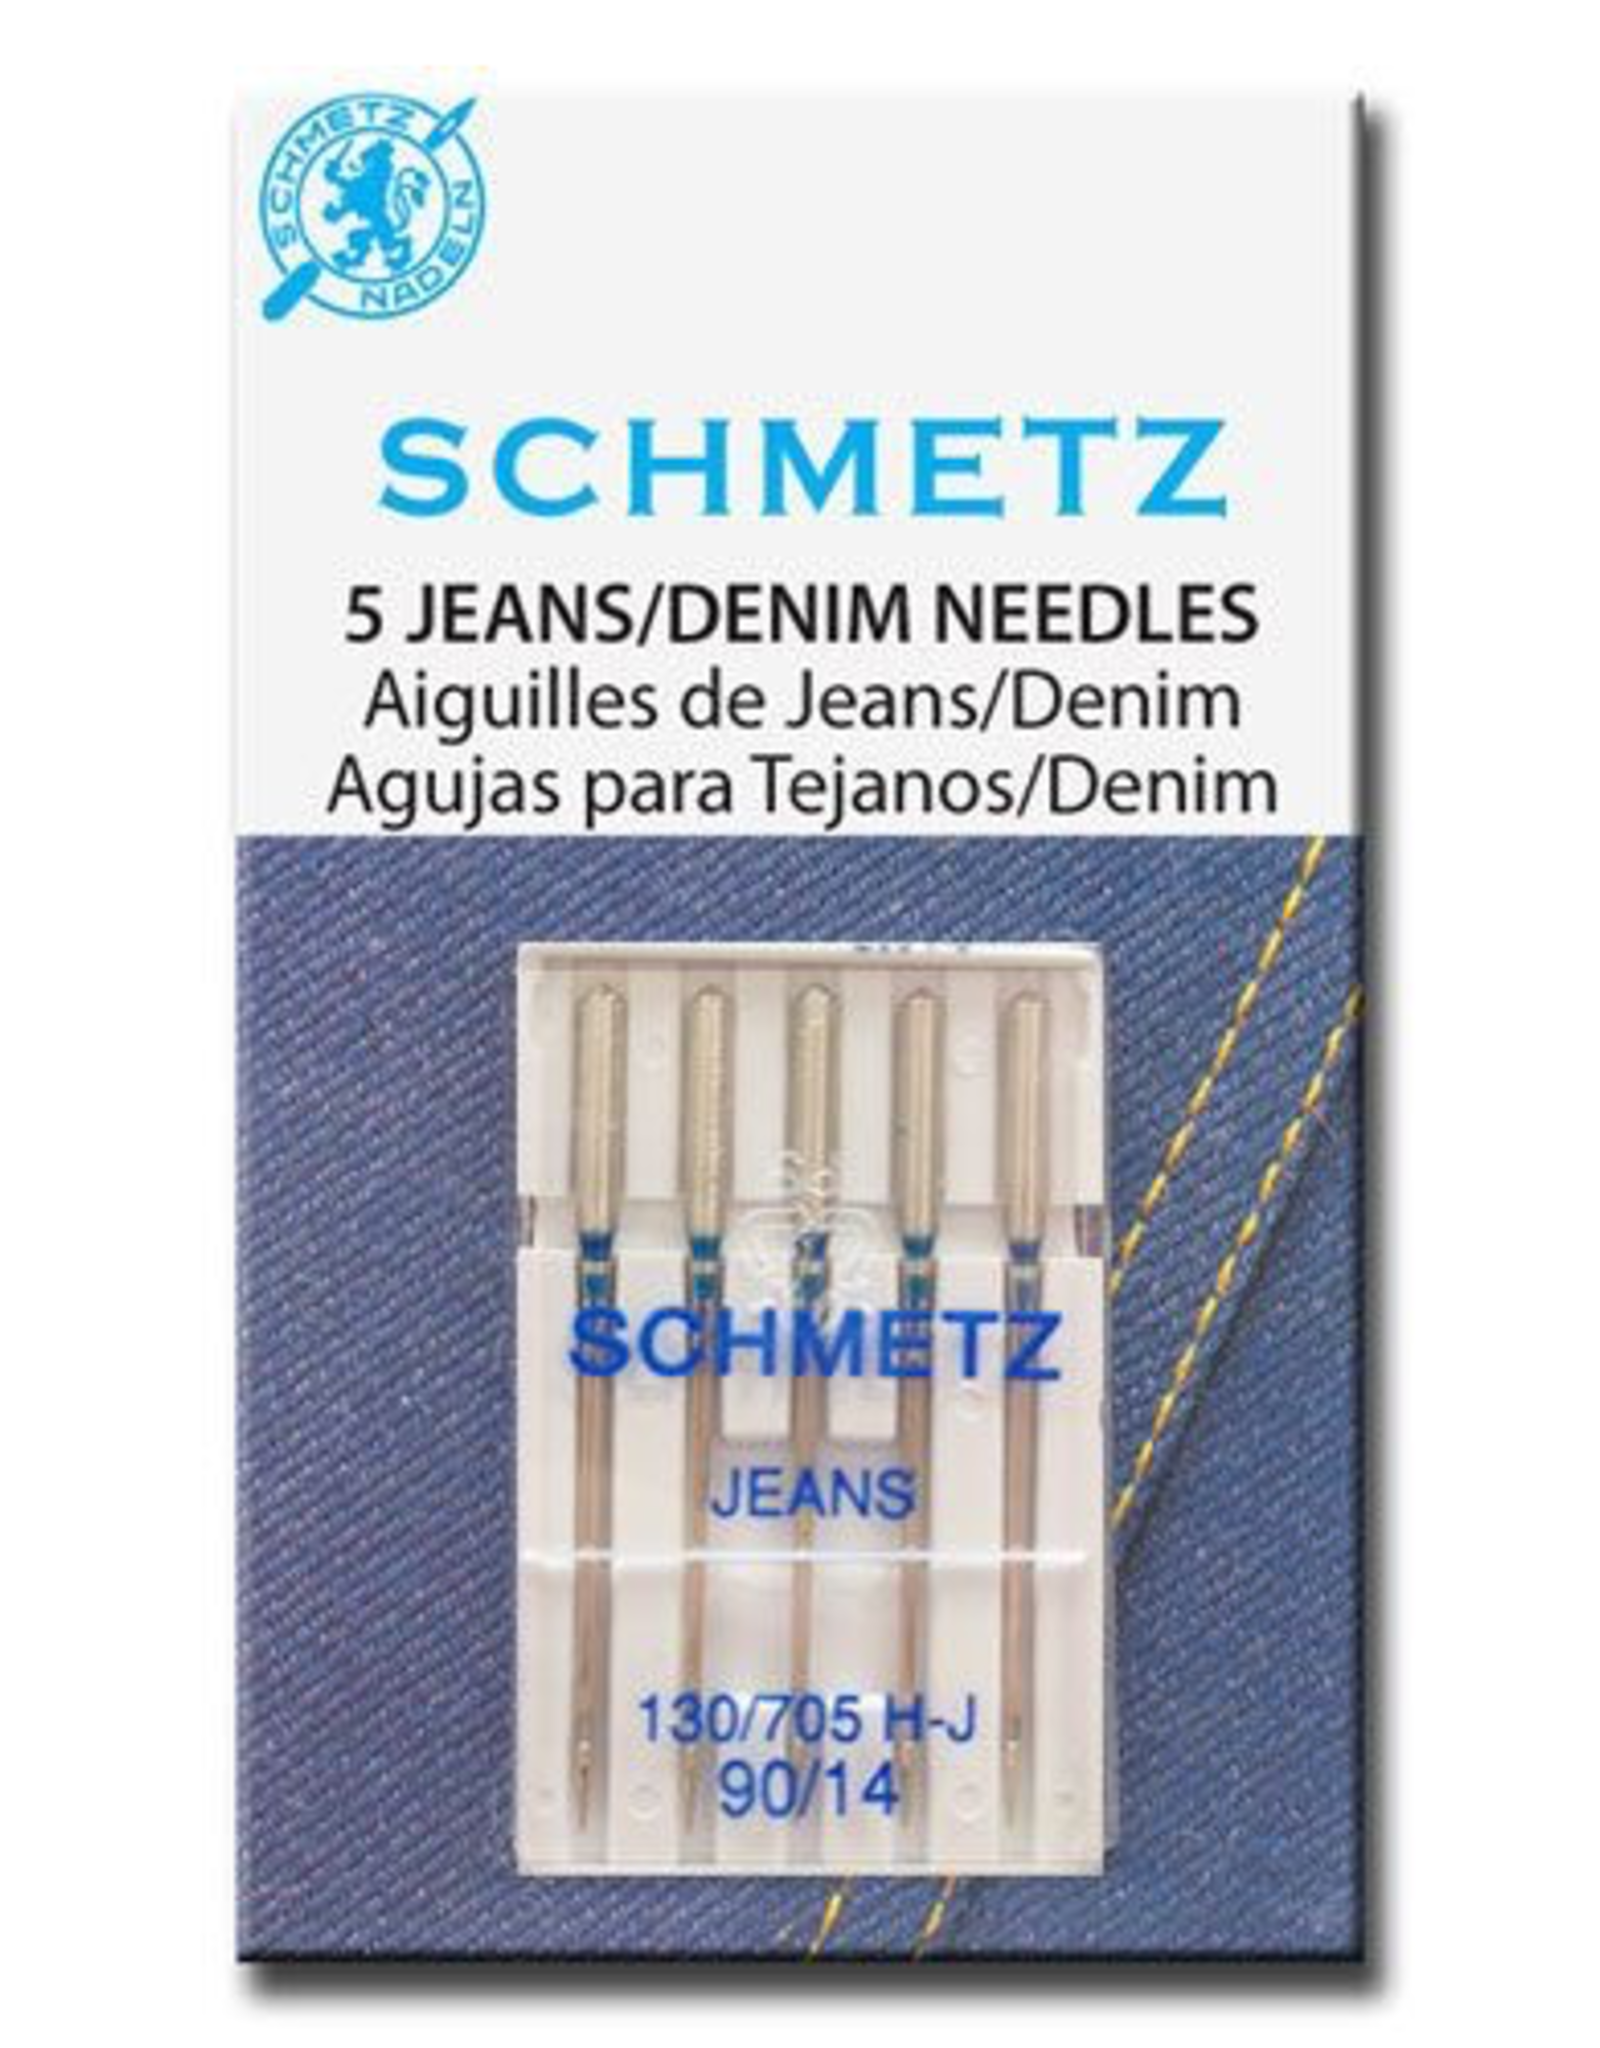 Schmetz Denim Machine Needle Size 90/14